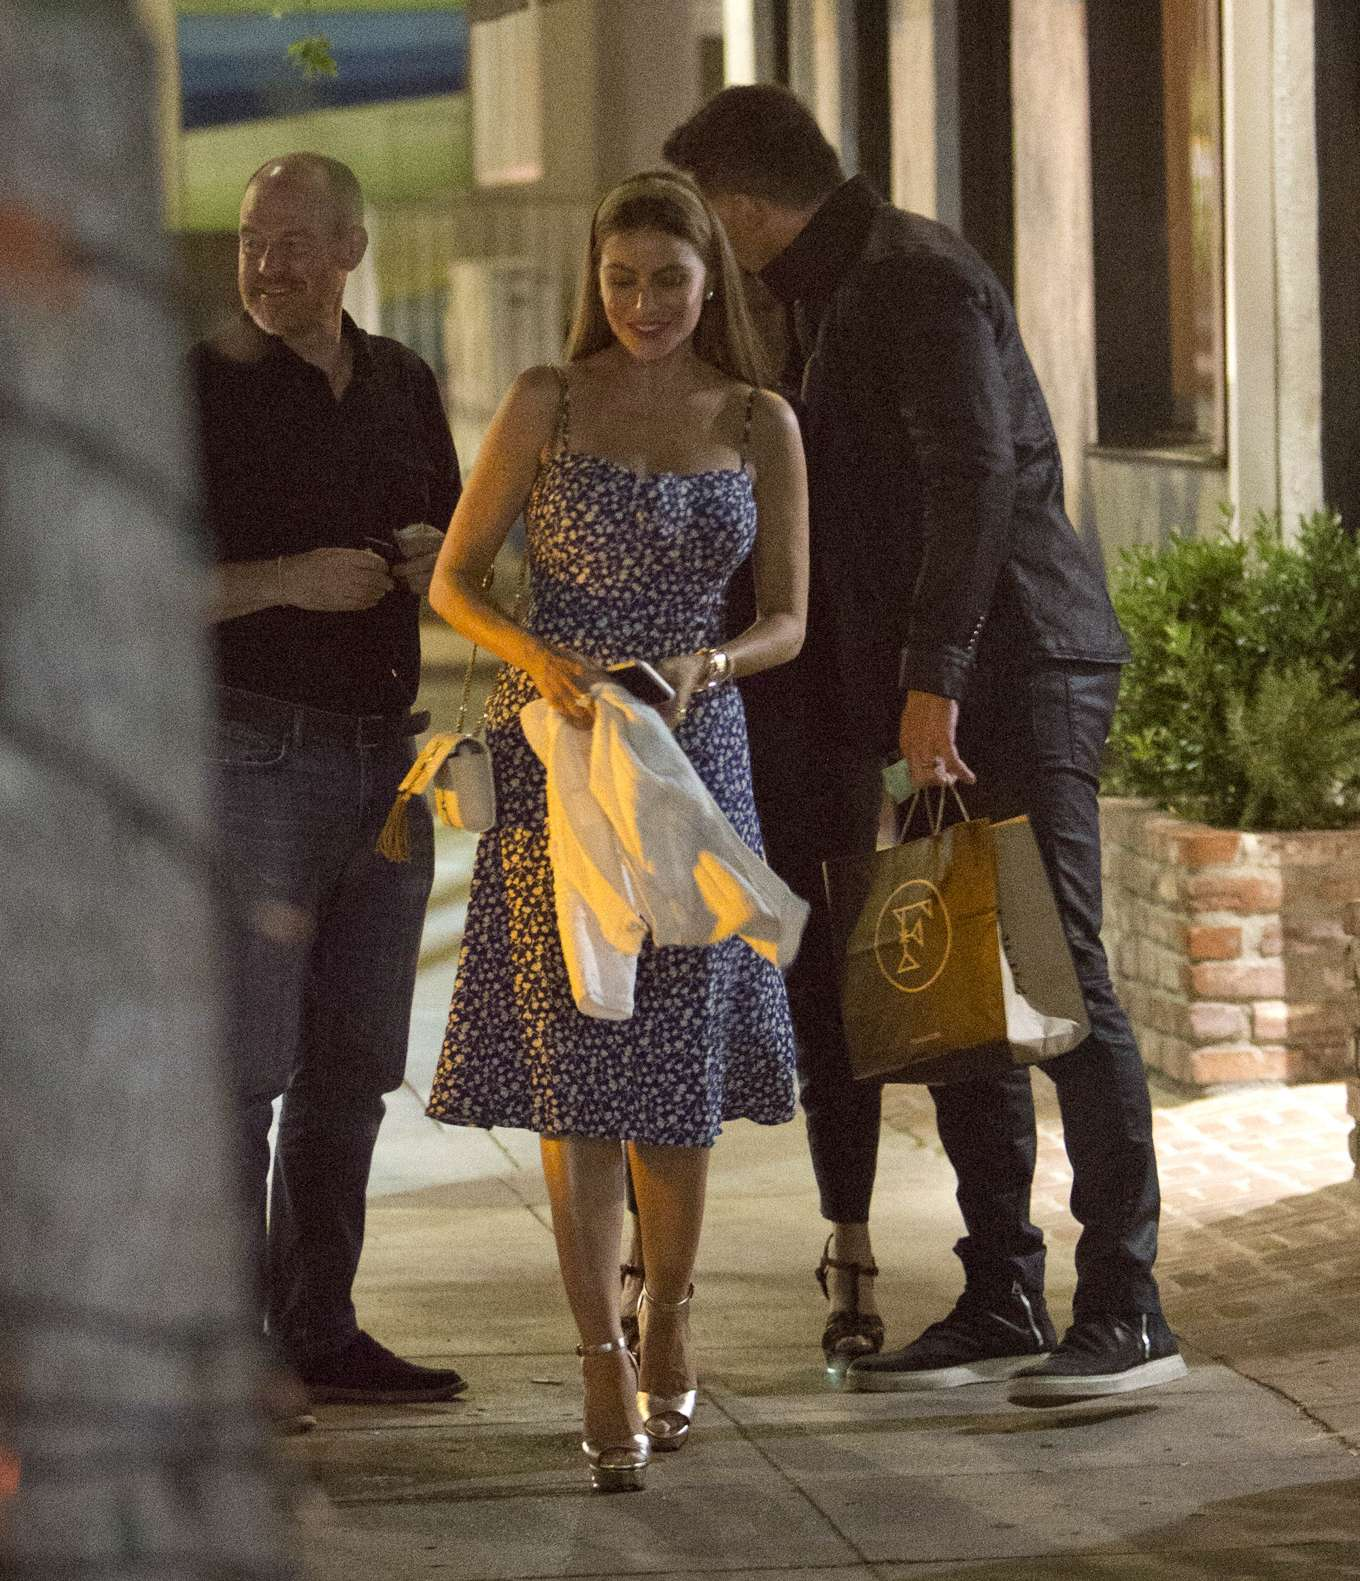 Sofia Vergara - Spotted at Felix Restaurant in Venice